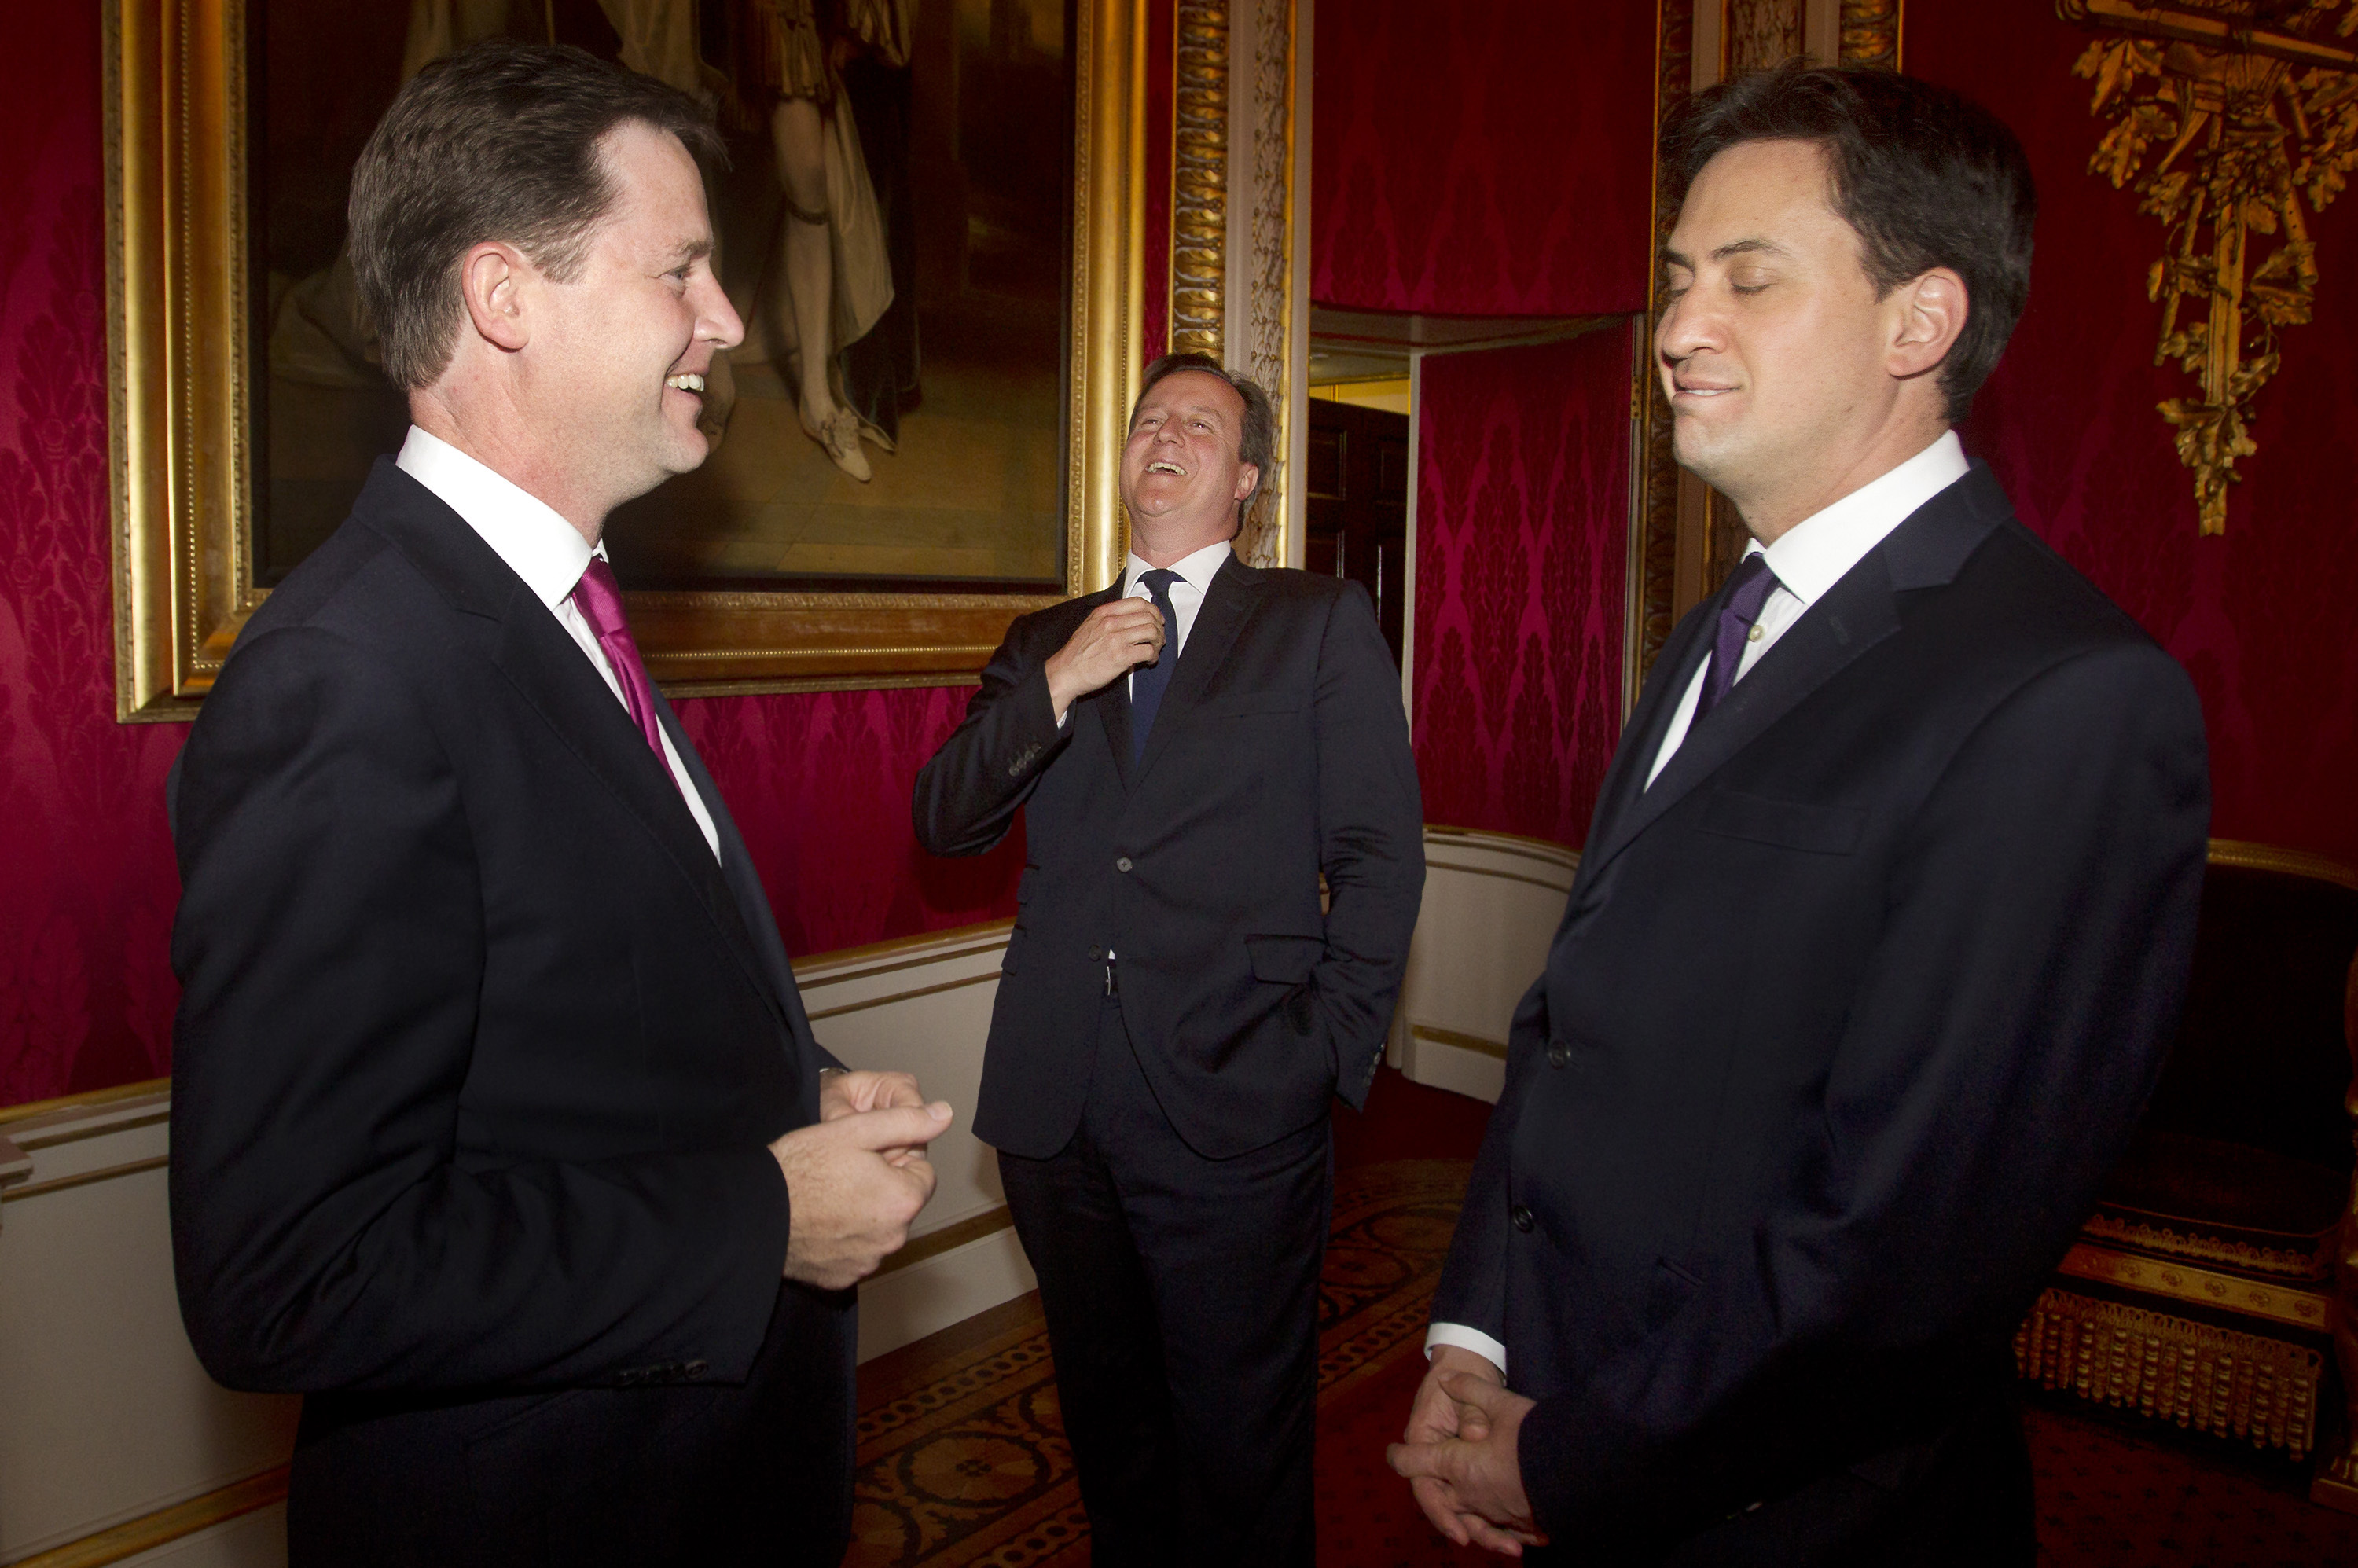 (From left to right) Deputy Prime Minister Nick Clegg, Prime Minister David Cameron and Labour Leader Ed Miliband share a joke during a reception to mark the inaugural Queen Elizabeth Prize for Engineering, at Buckingham Palace in central London on June 25, 2013. AFP PHOTO/POOL/LEWIS WHYLD (Photo credit should read LEWIS WHYLD/AFP/Getty Images)